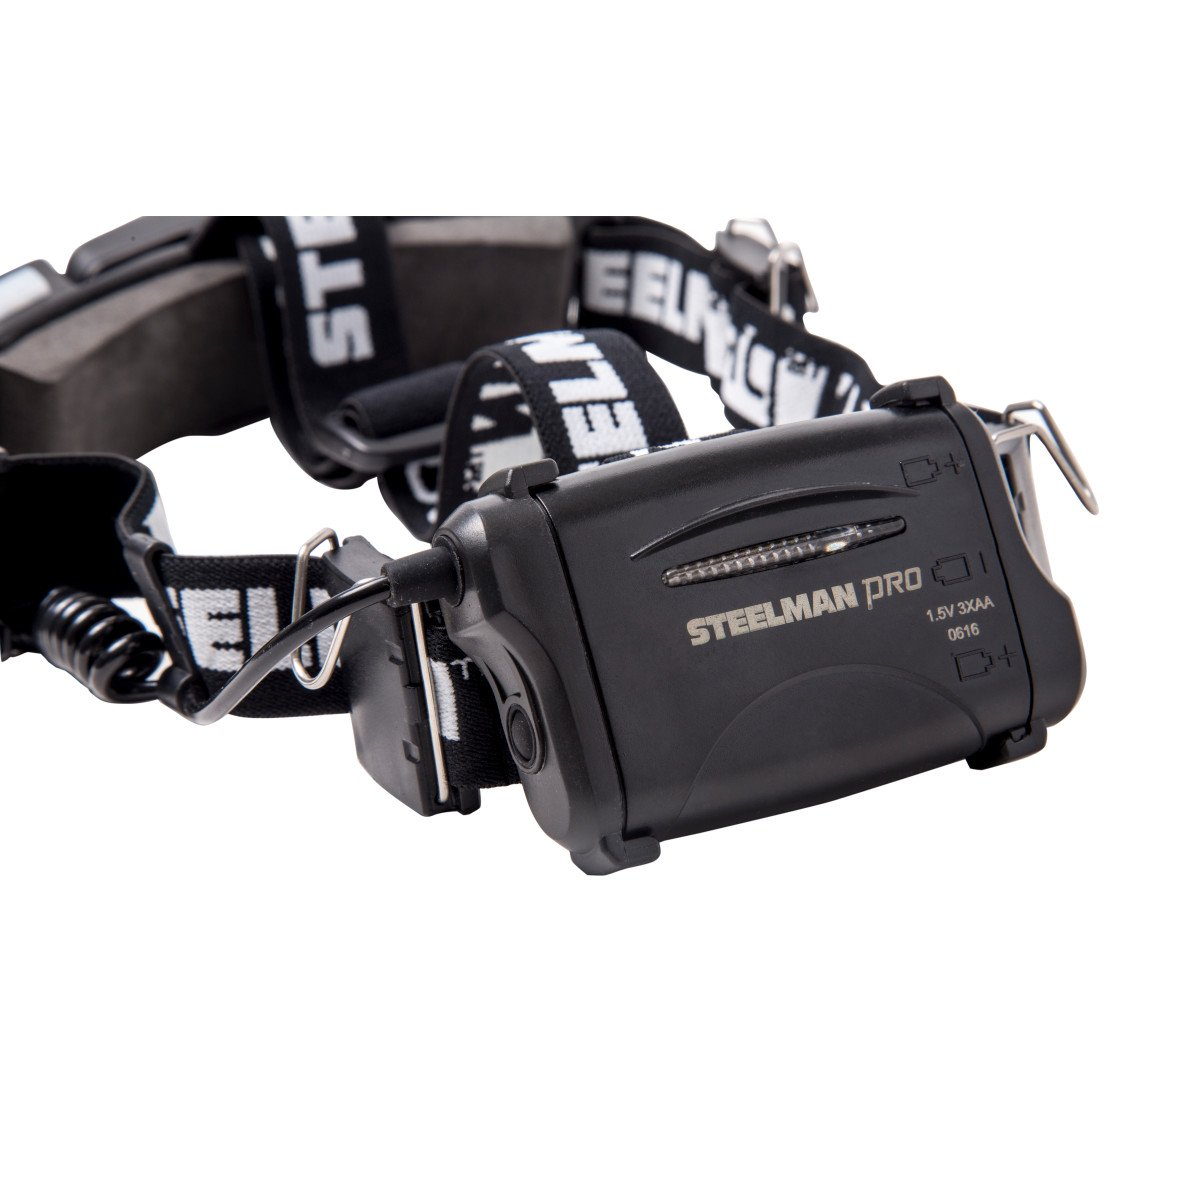 STEELMAN PRO 79052 Slim Profile LED Headlamp with Rear Flasher and 3 AA Batteries